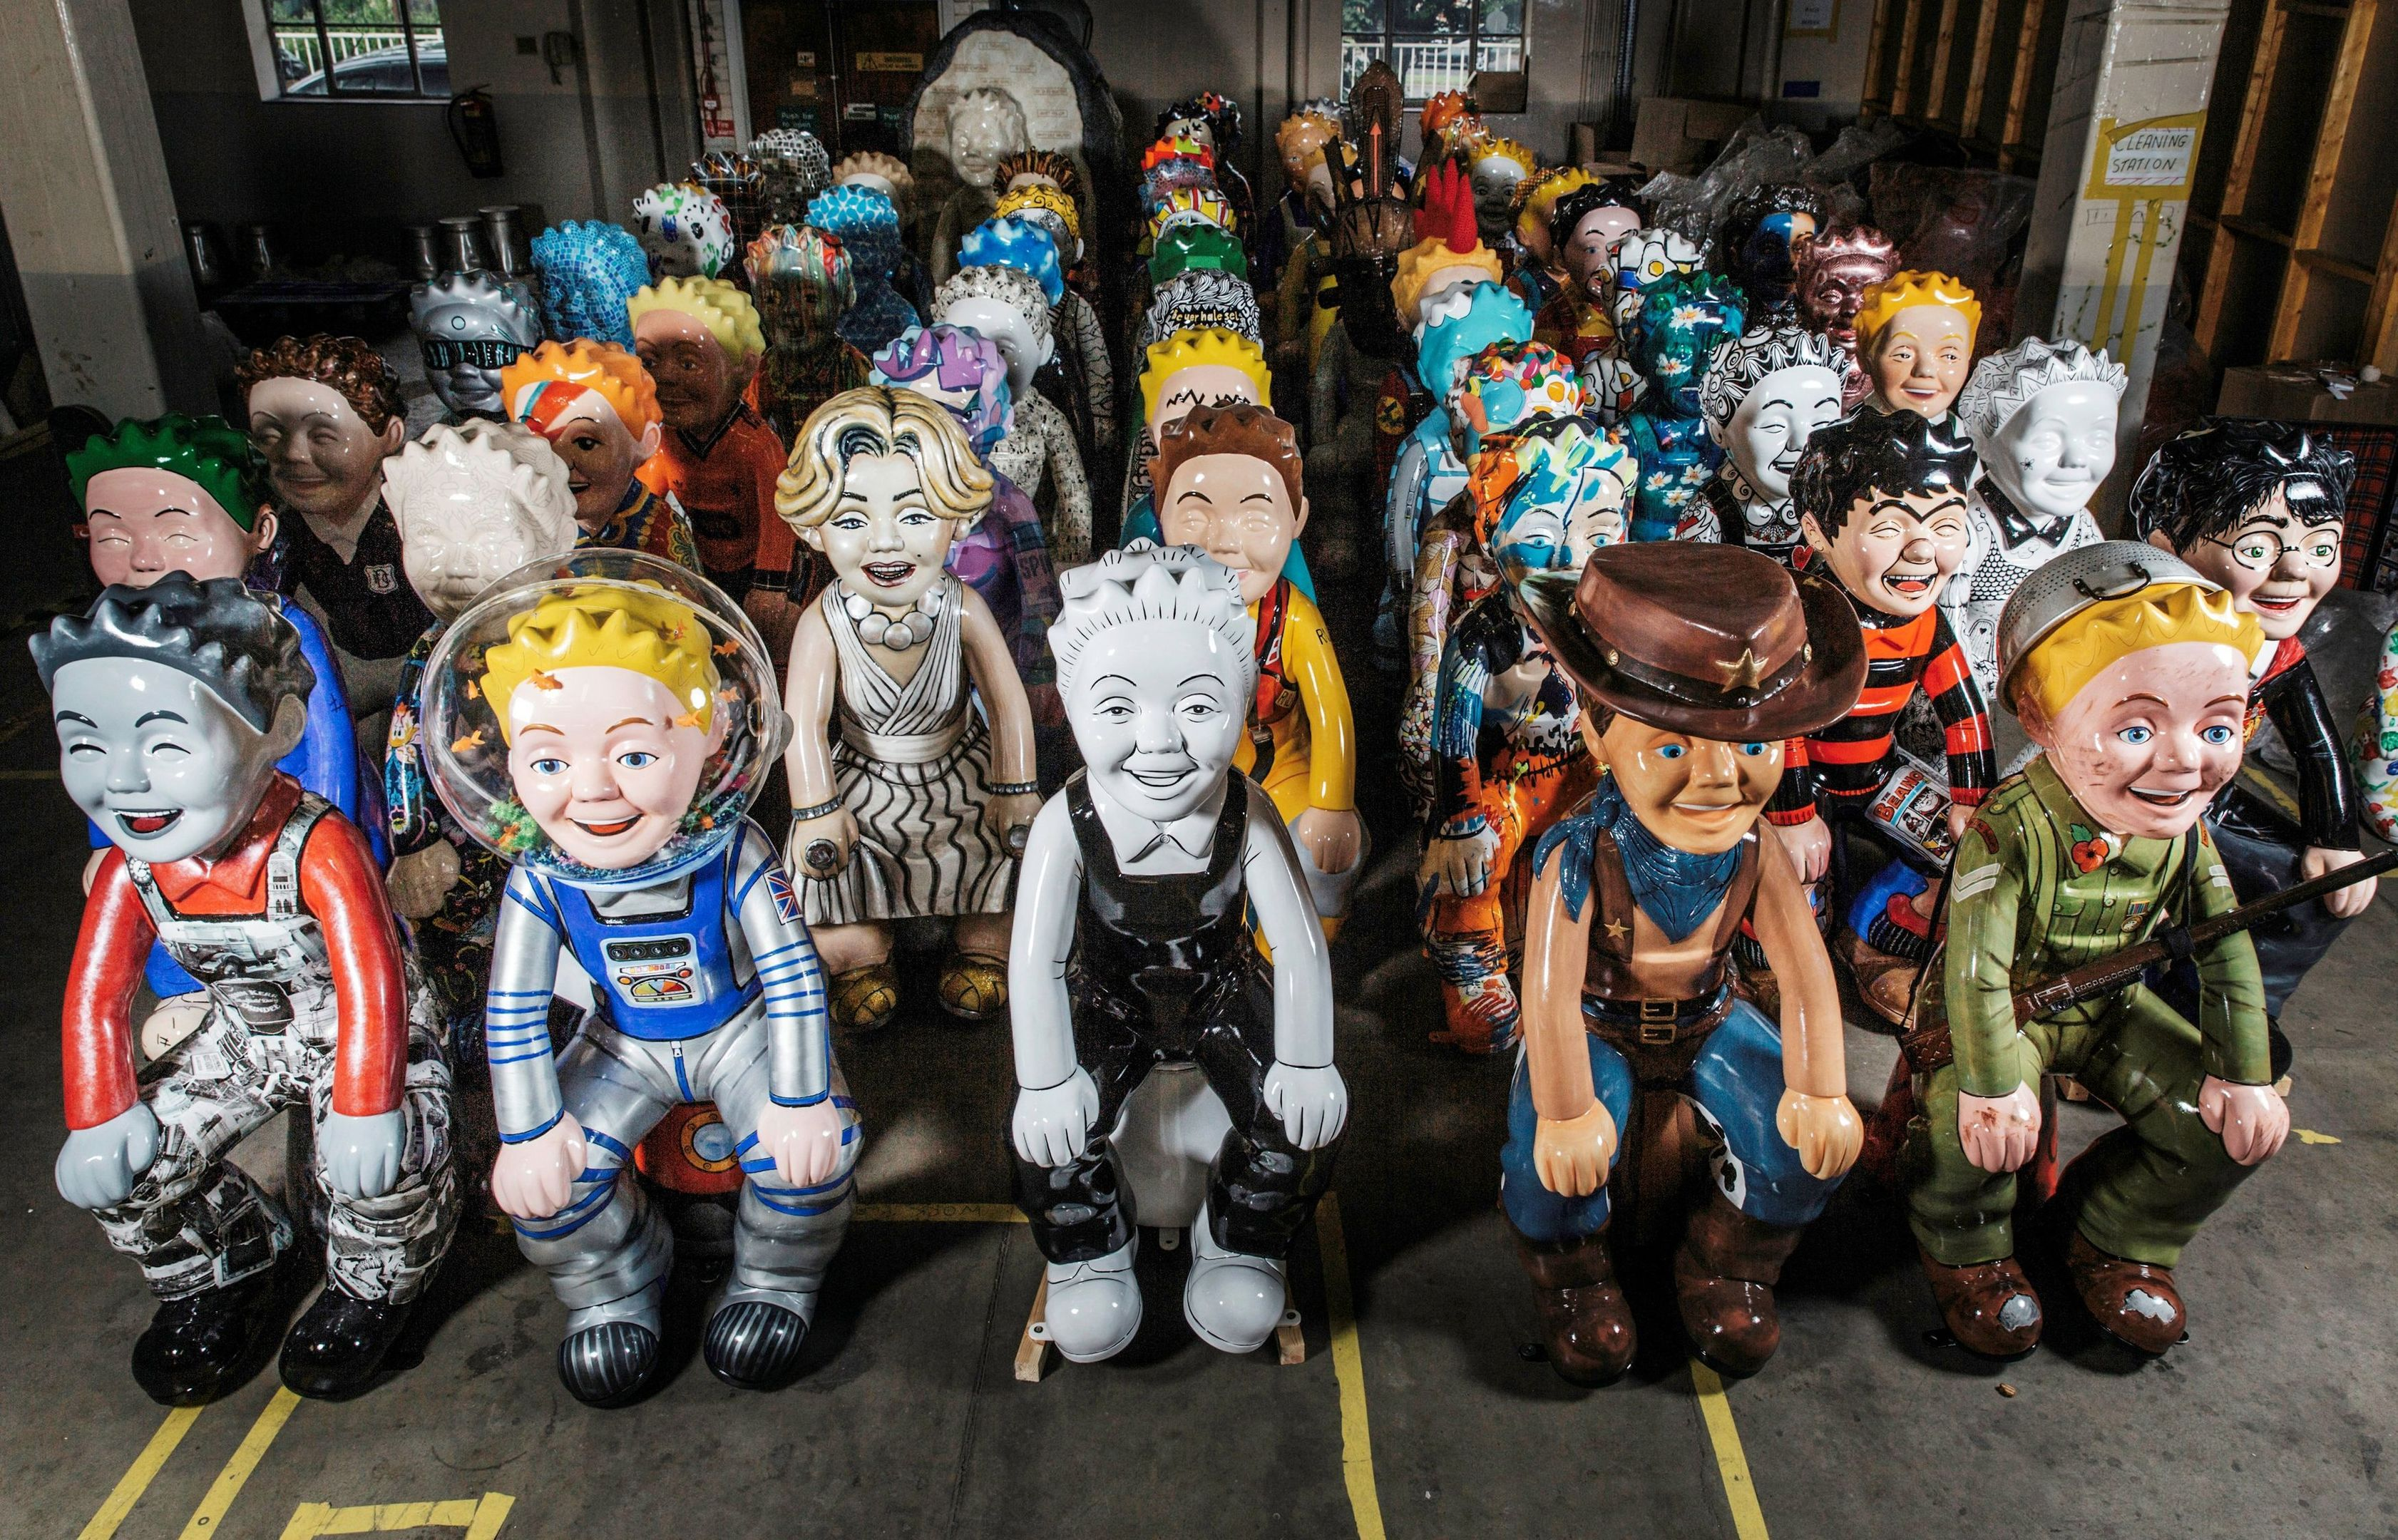 The Wullies waiting to go to their new homes.